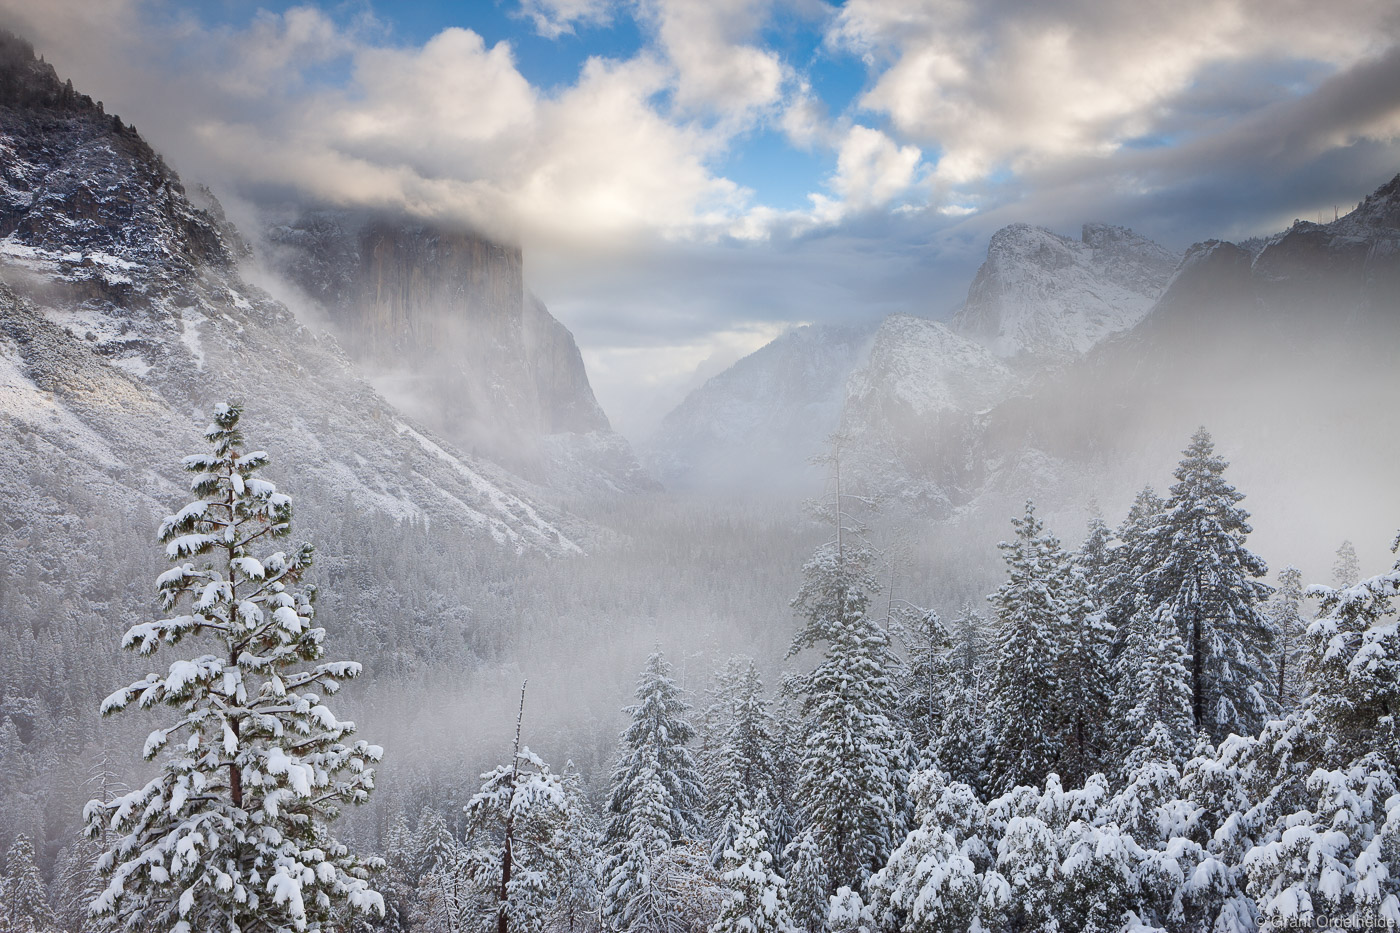 A winter storm covers Yosemite Valley in a blanket of snow.